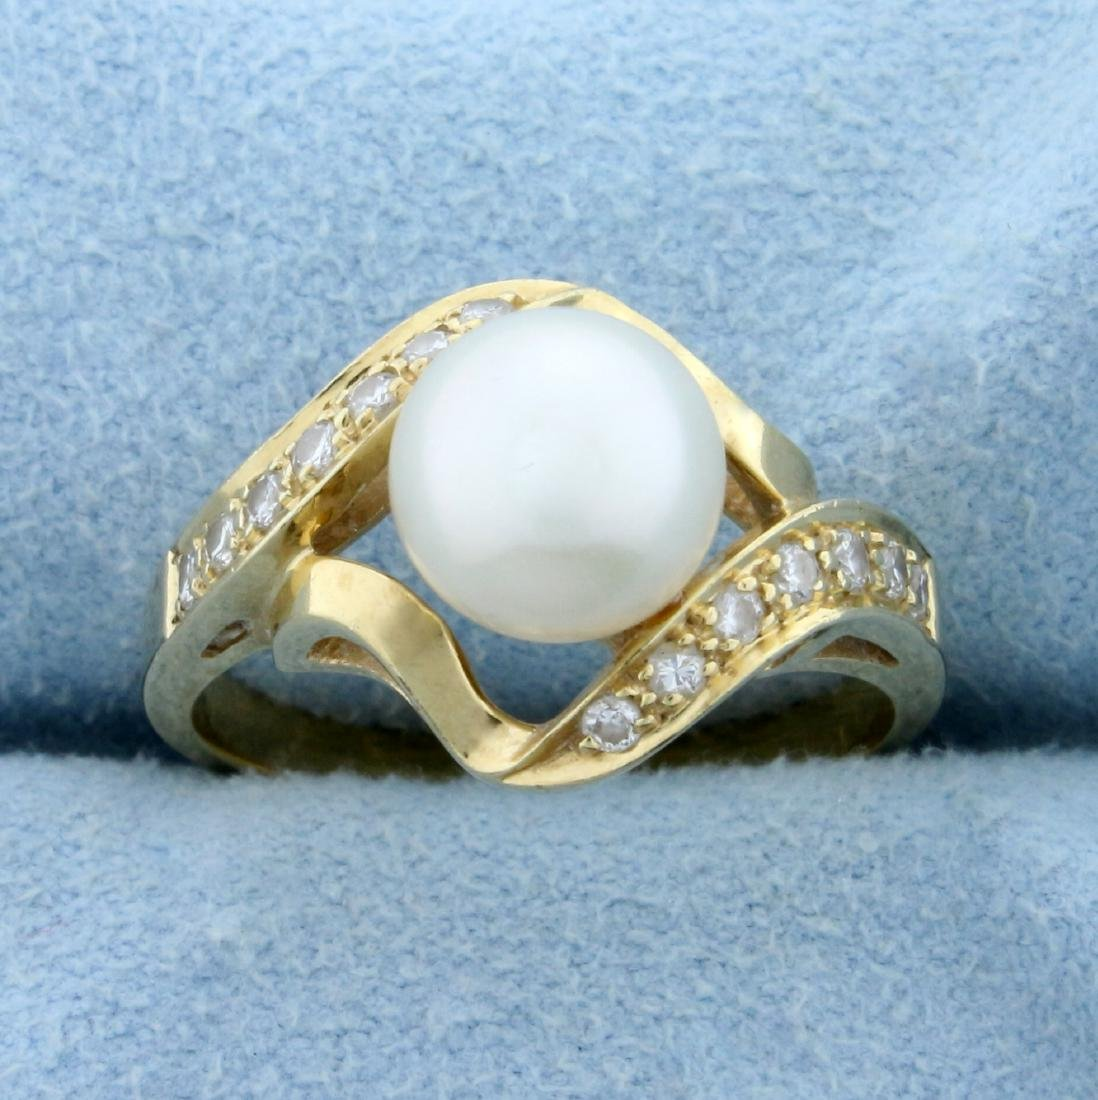 8mm Cultured Akoya Pearl and Diamond Ring in 14K Yellow